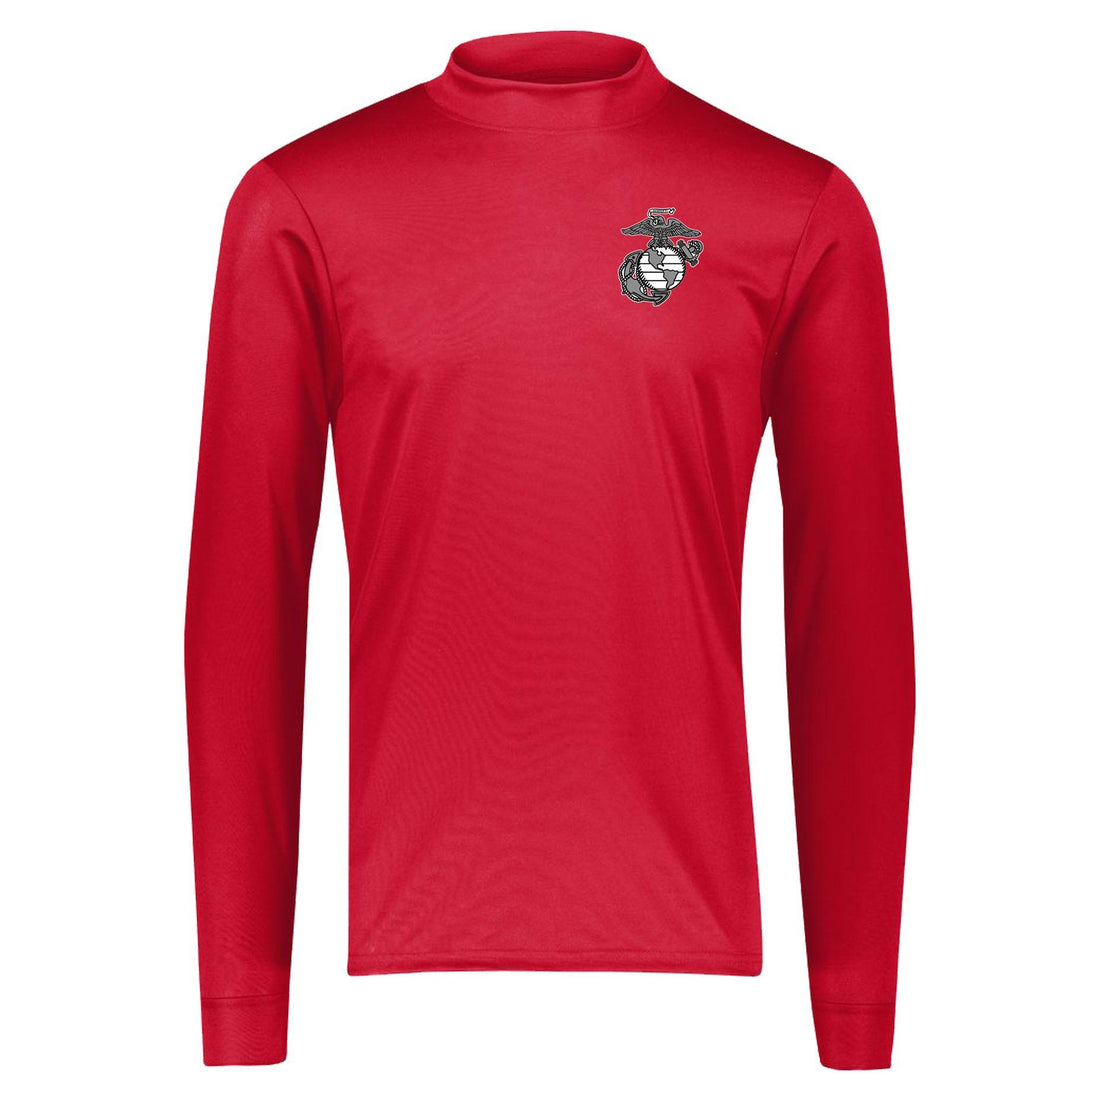 Marines Dri-Fit Performance Mock Turtleneck Long Sleeve - Marine Corps Direct